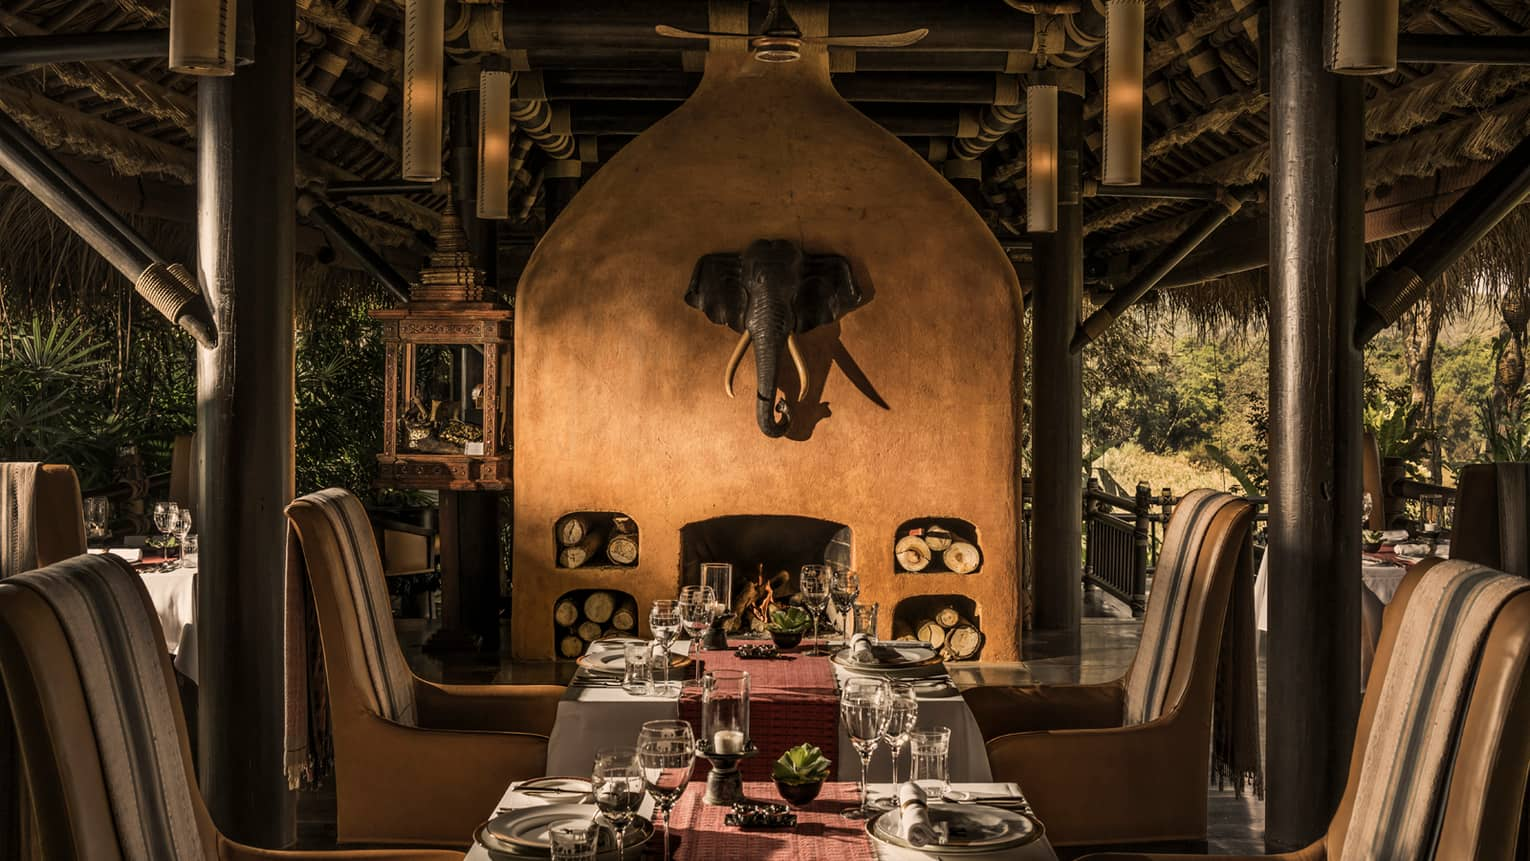 Dining tables in front of tall clay fireplace with mounted elephant head statue